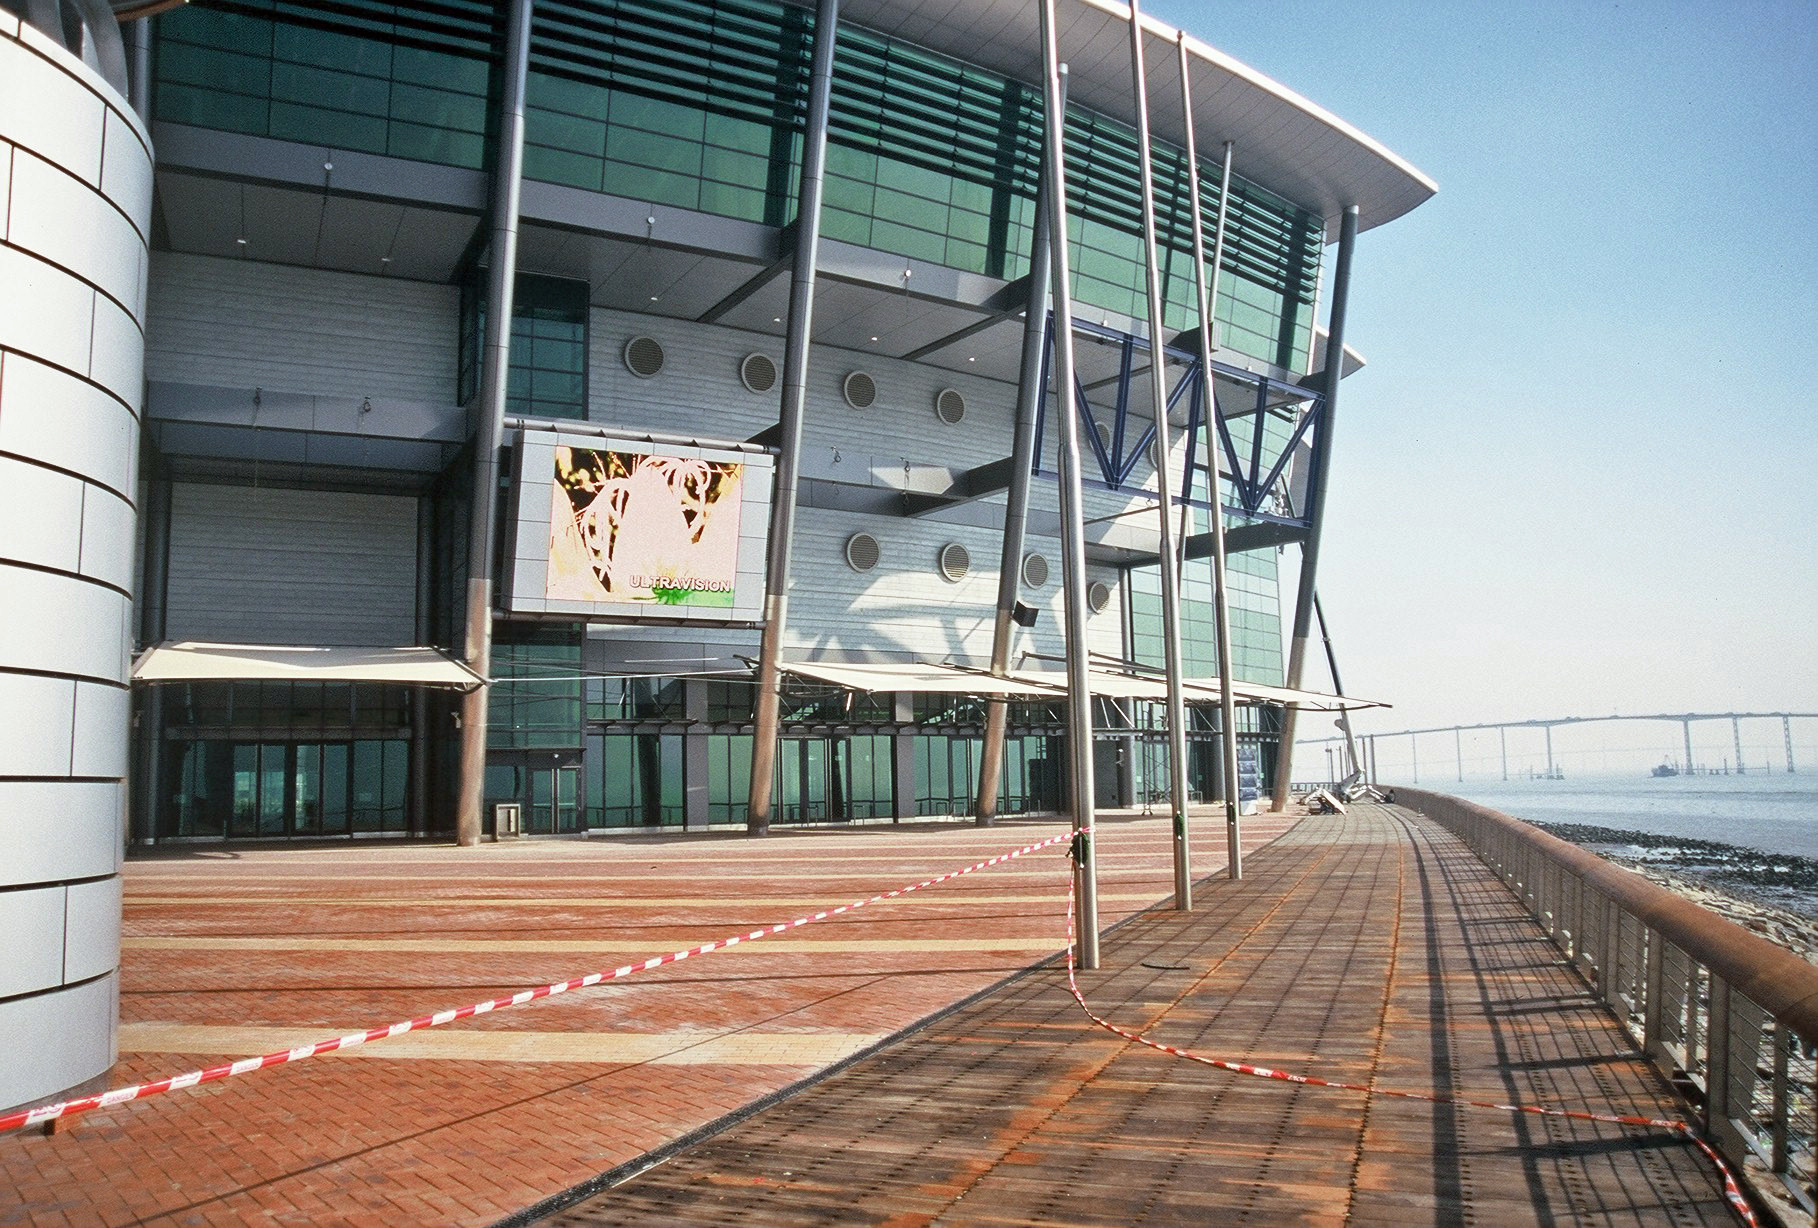 Macau Entertainment & Convention Centre